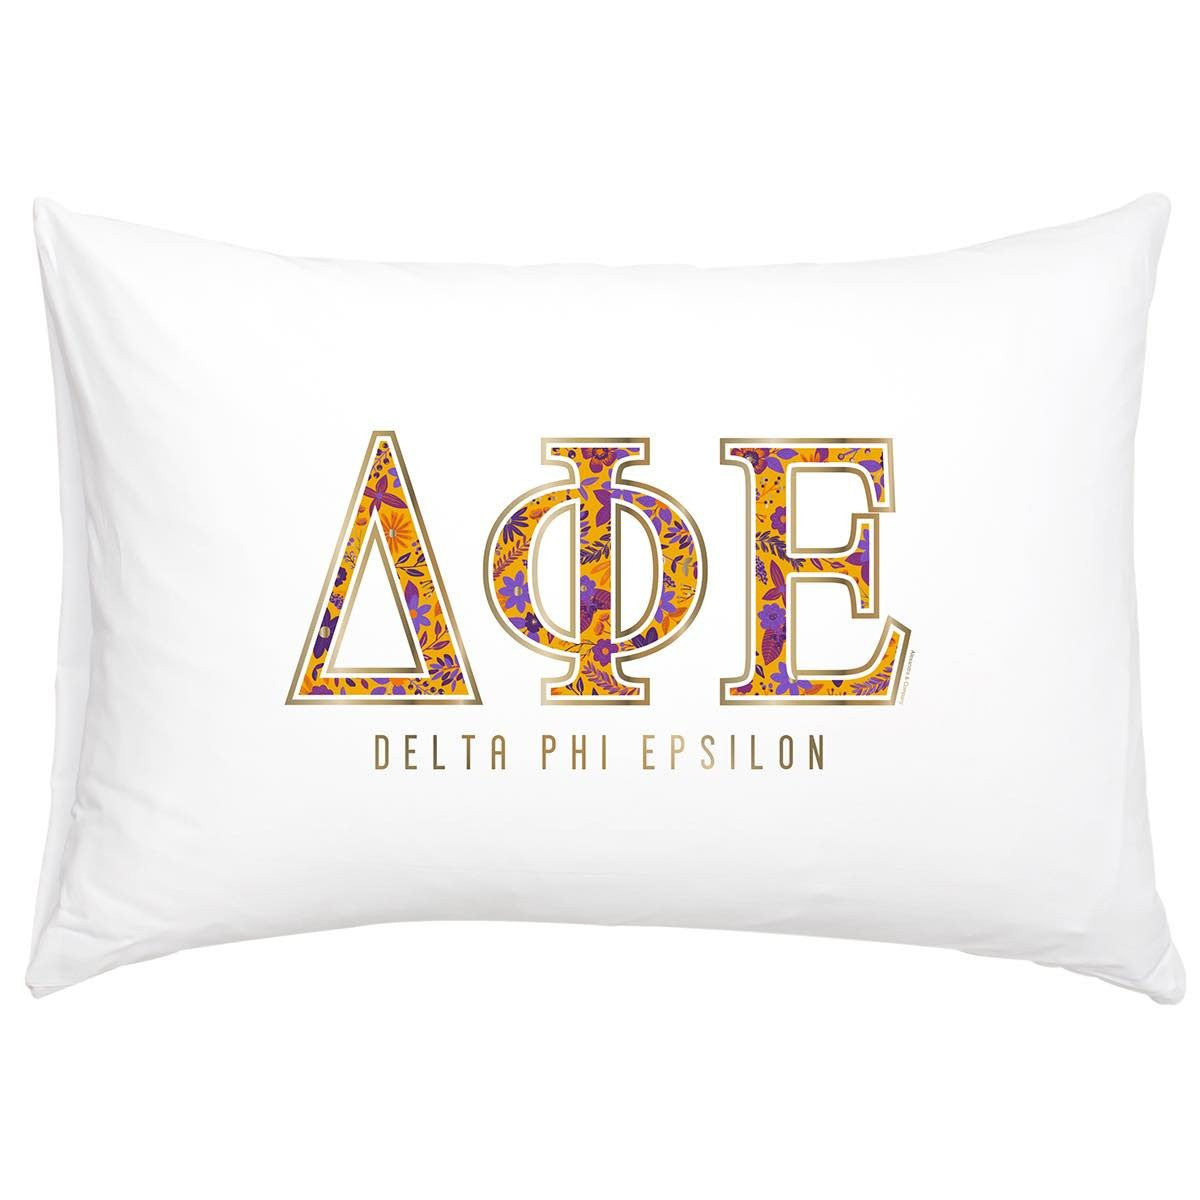 Delta Phi Epsilon Pillowcase with gold and floral print.